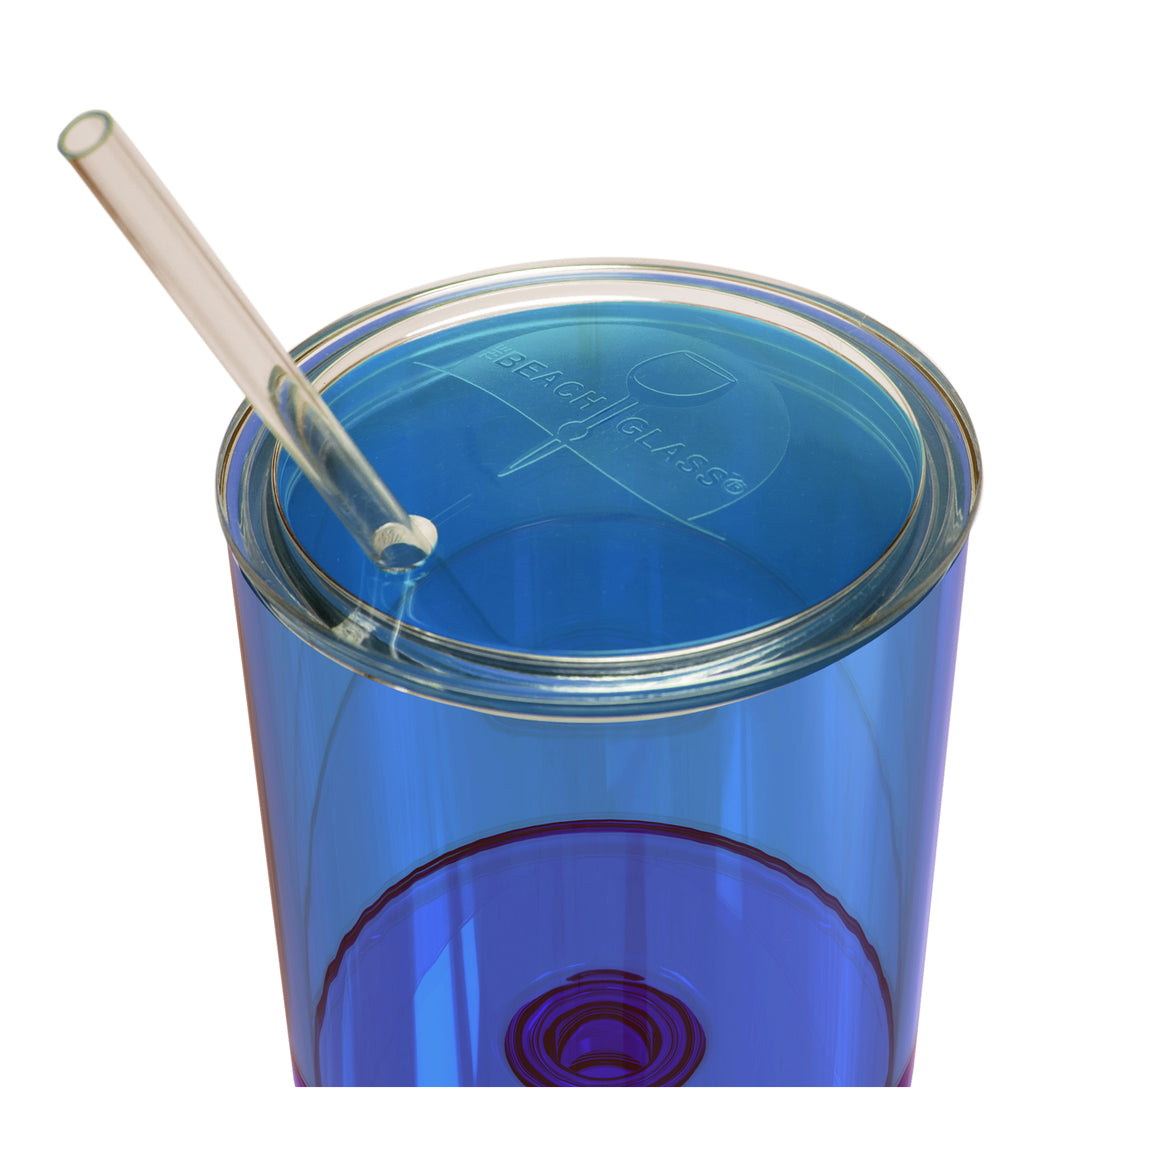 NEW Caribbean Collection Lid & Straw - the beach glass